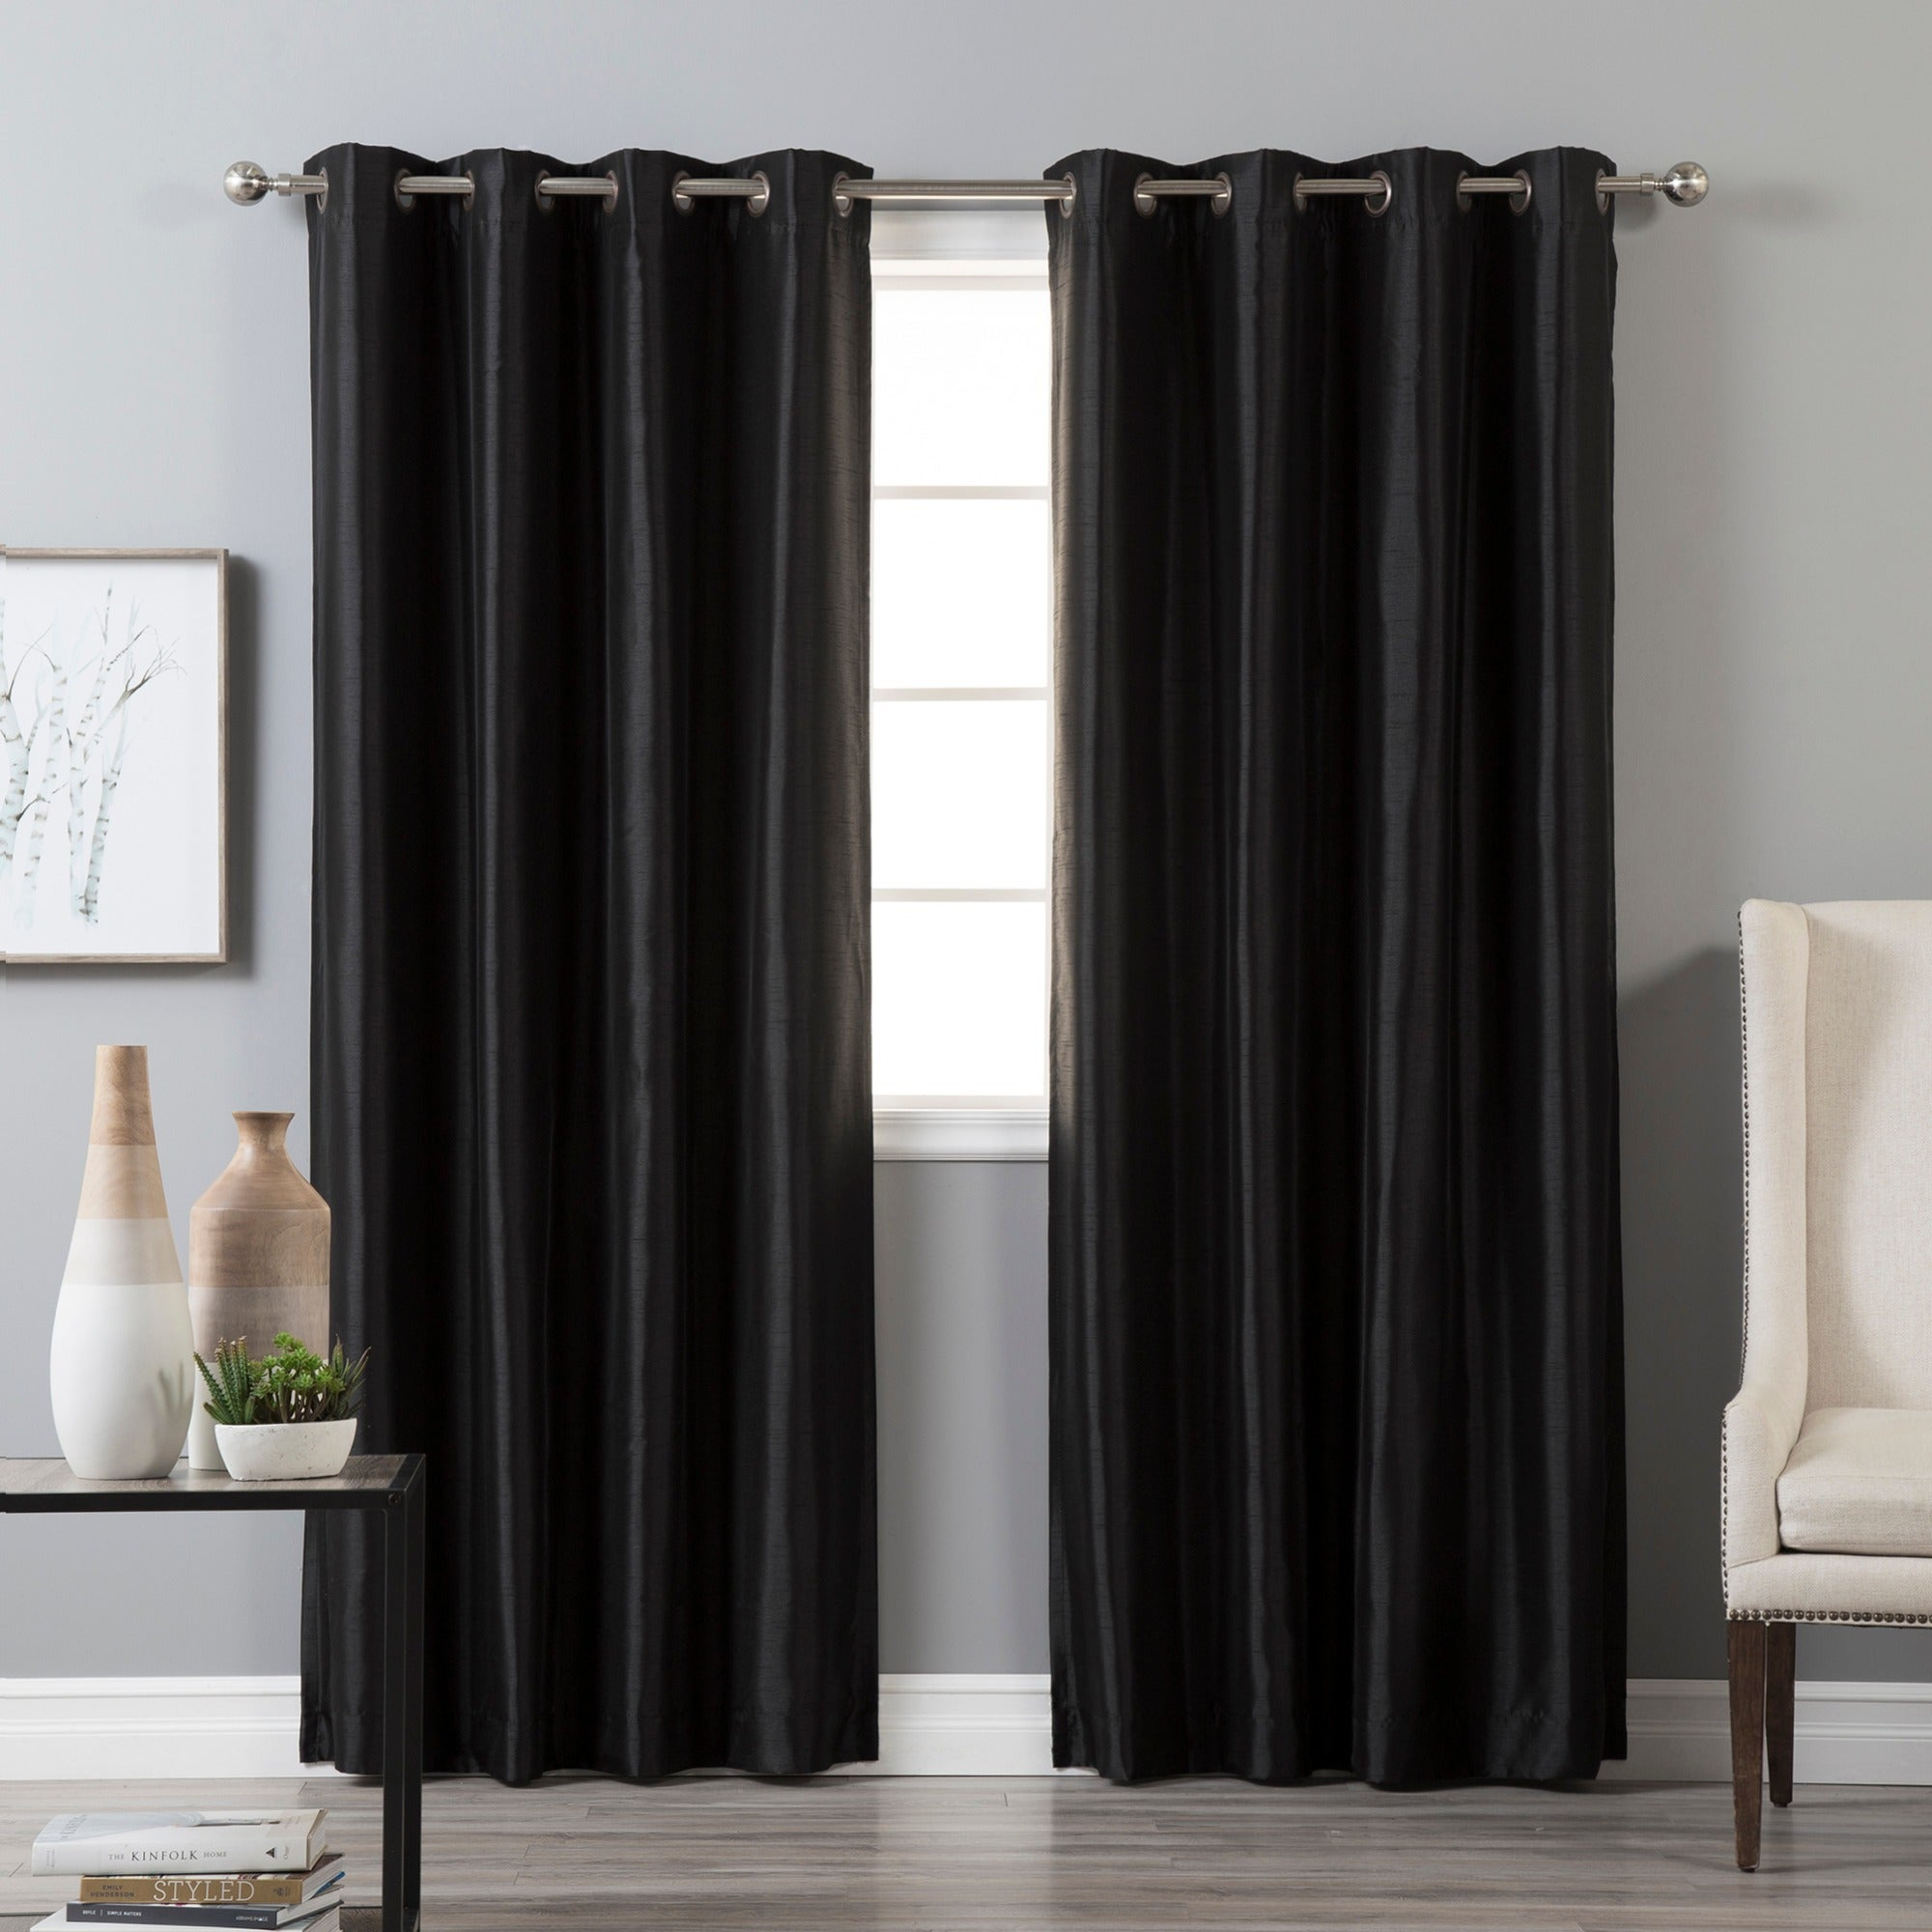 How To Get Wrinkles Out Of Faux Silk Curtains Curtain